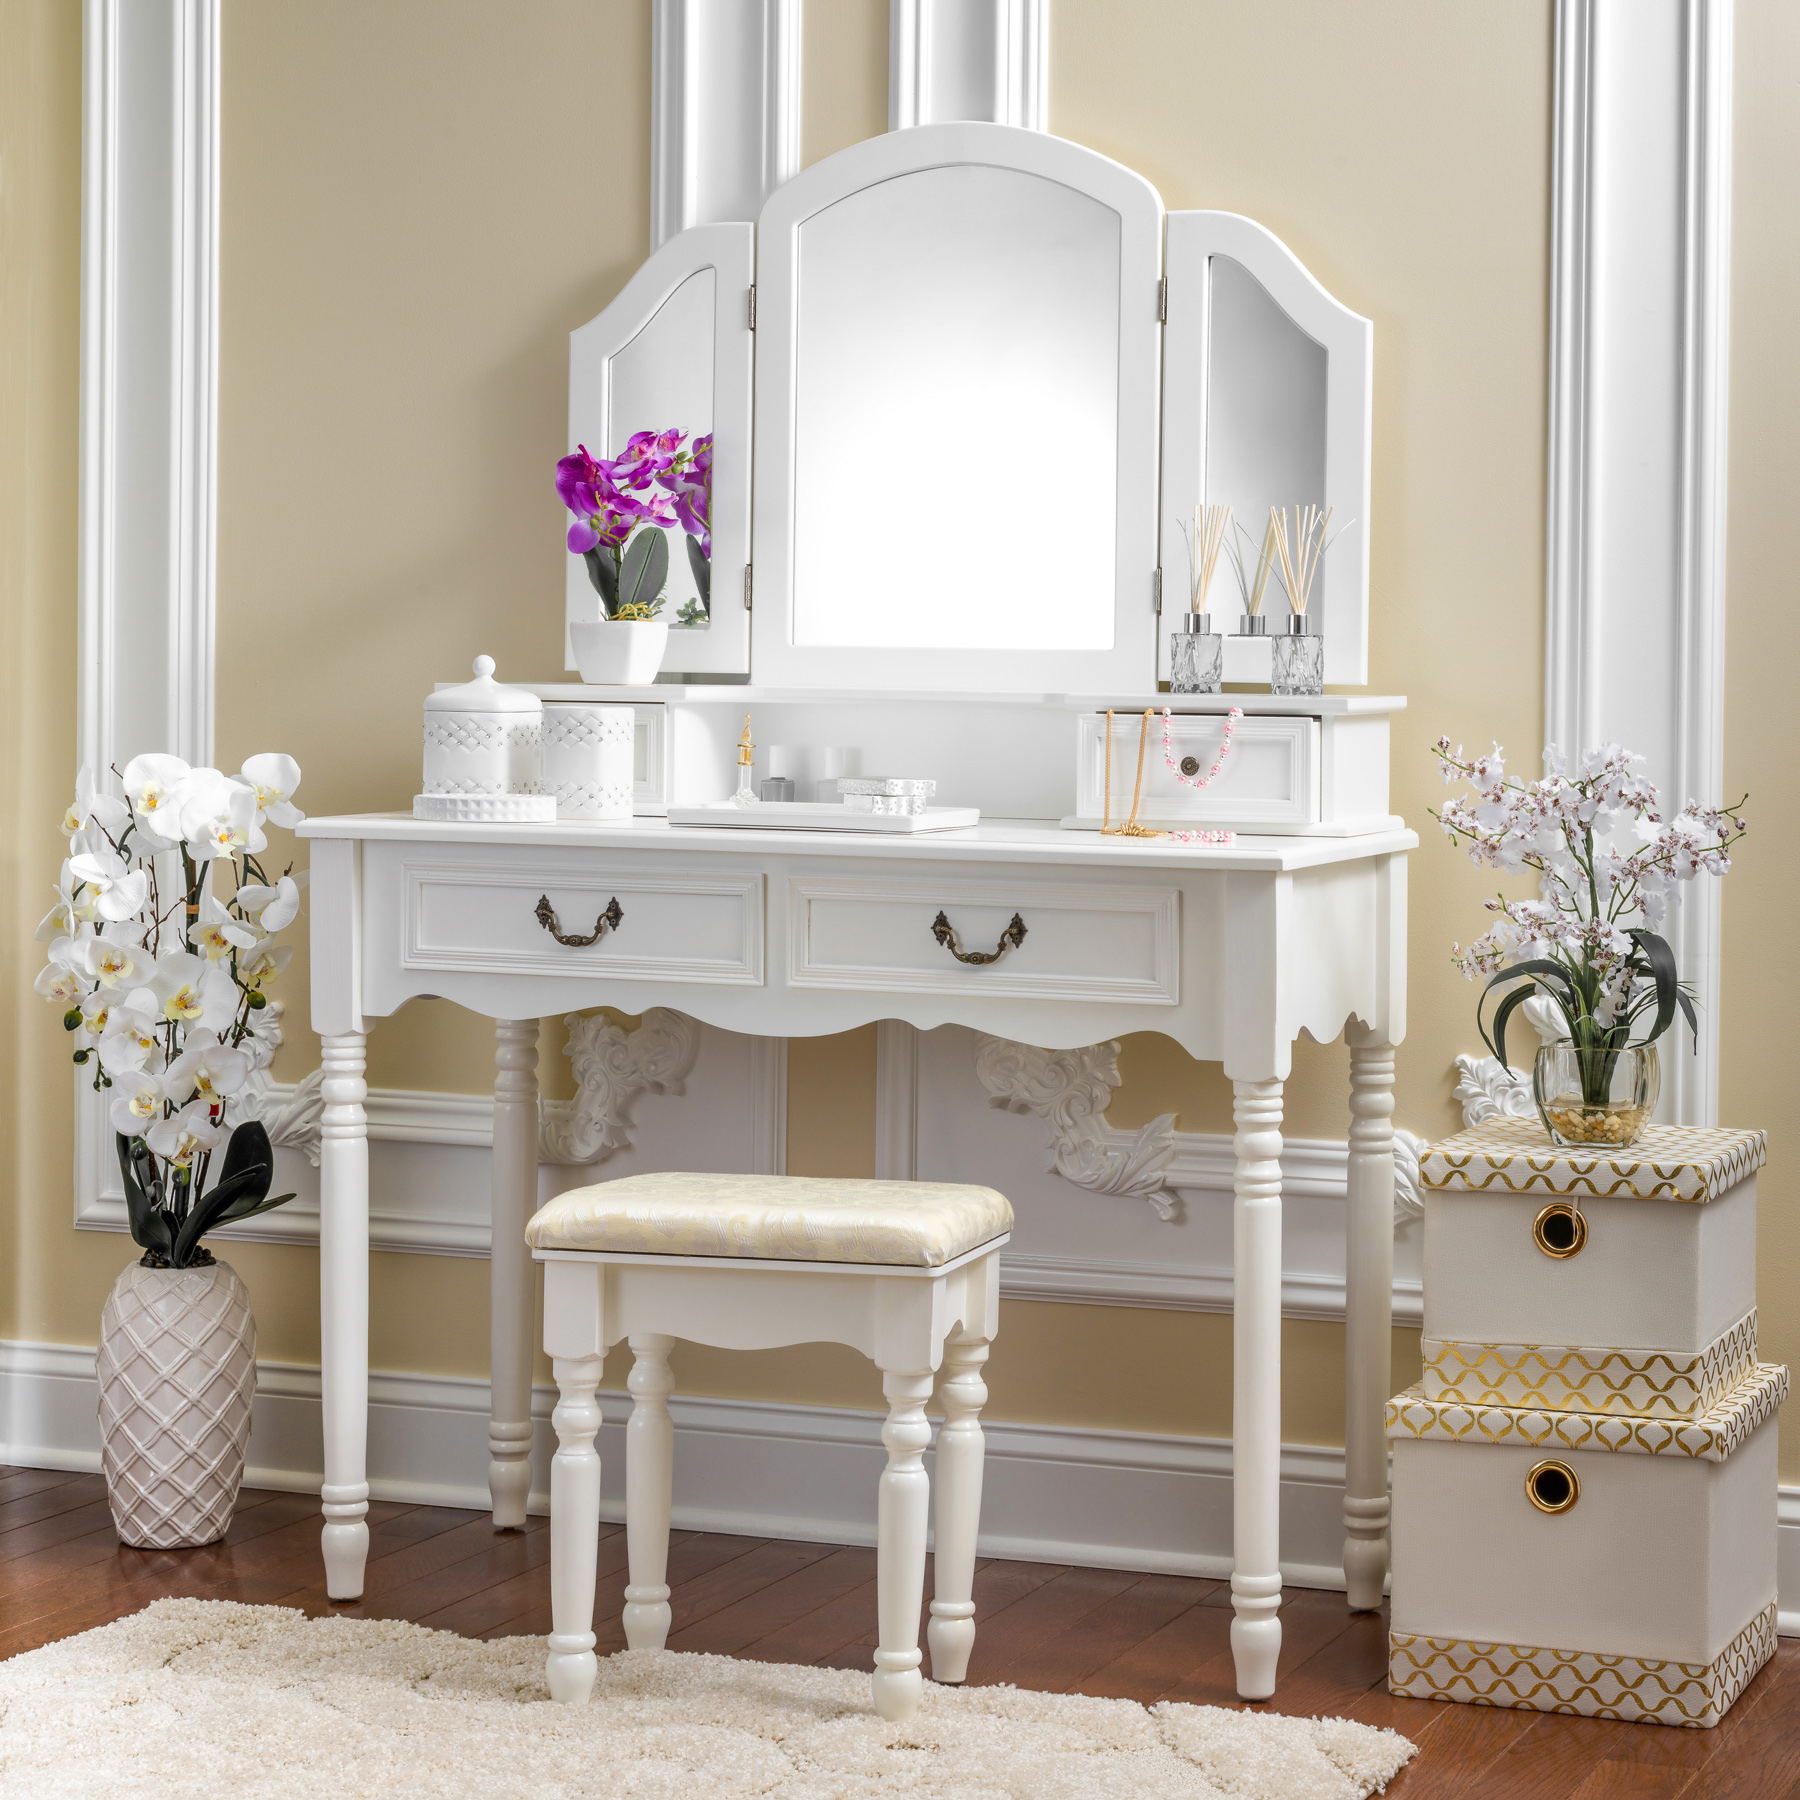 Fineboard Elegant Vanity Dressing Table Set Makeup Dressing Table with 3 Mirrors and Stool, 4 Drawers, White